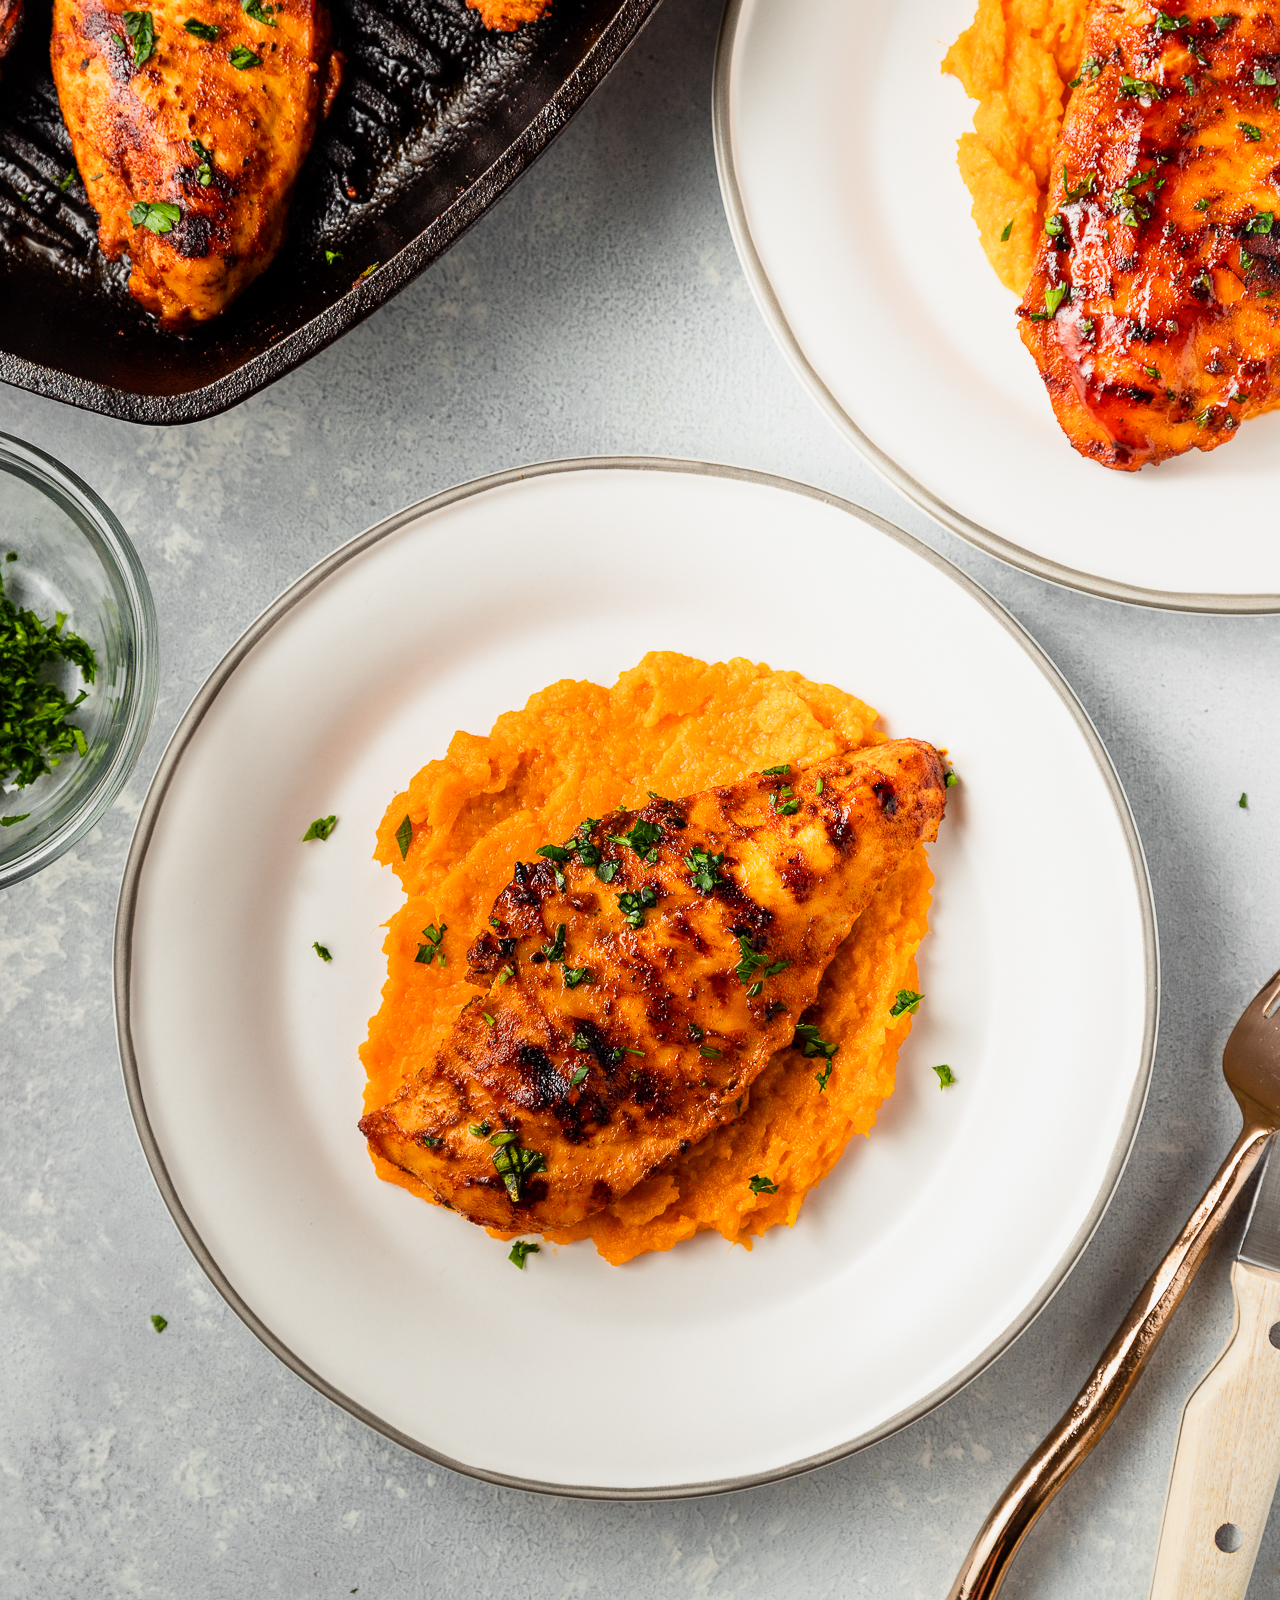 barbecue chicken served with mashed sweet potatoes